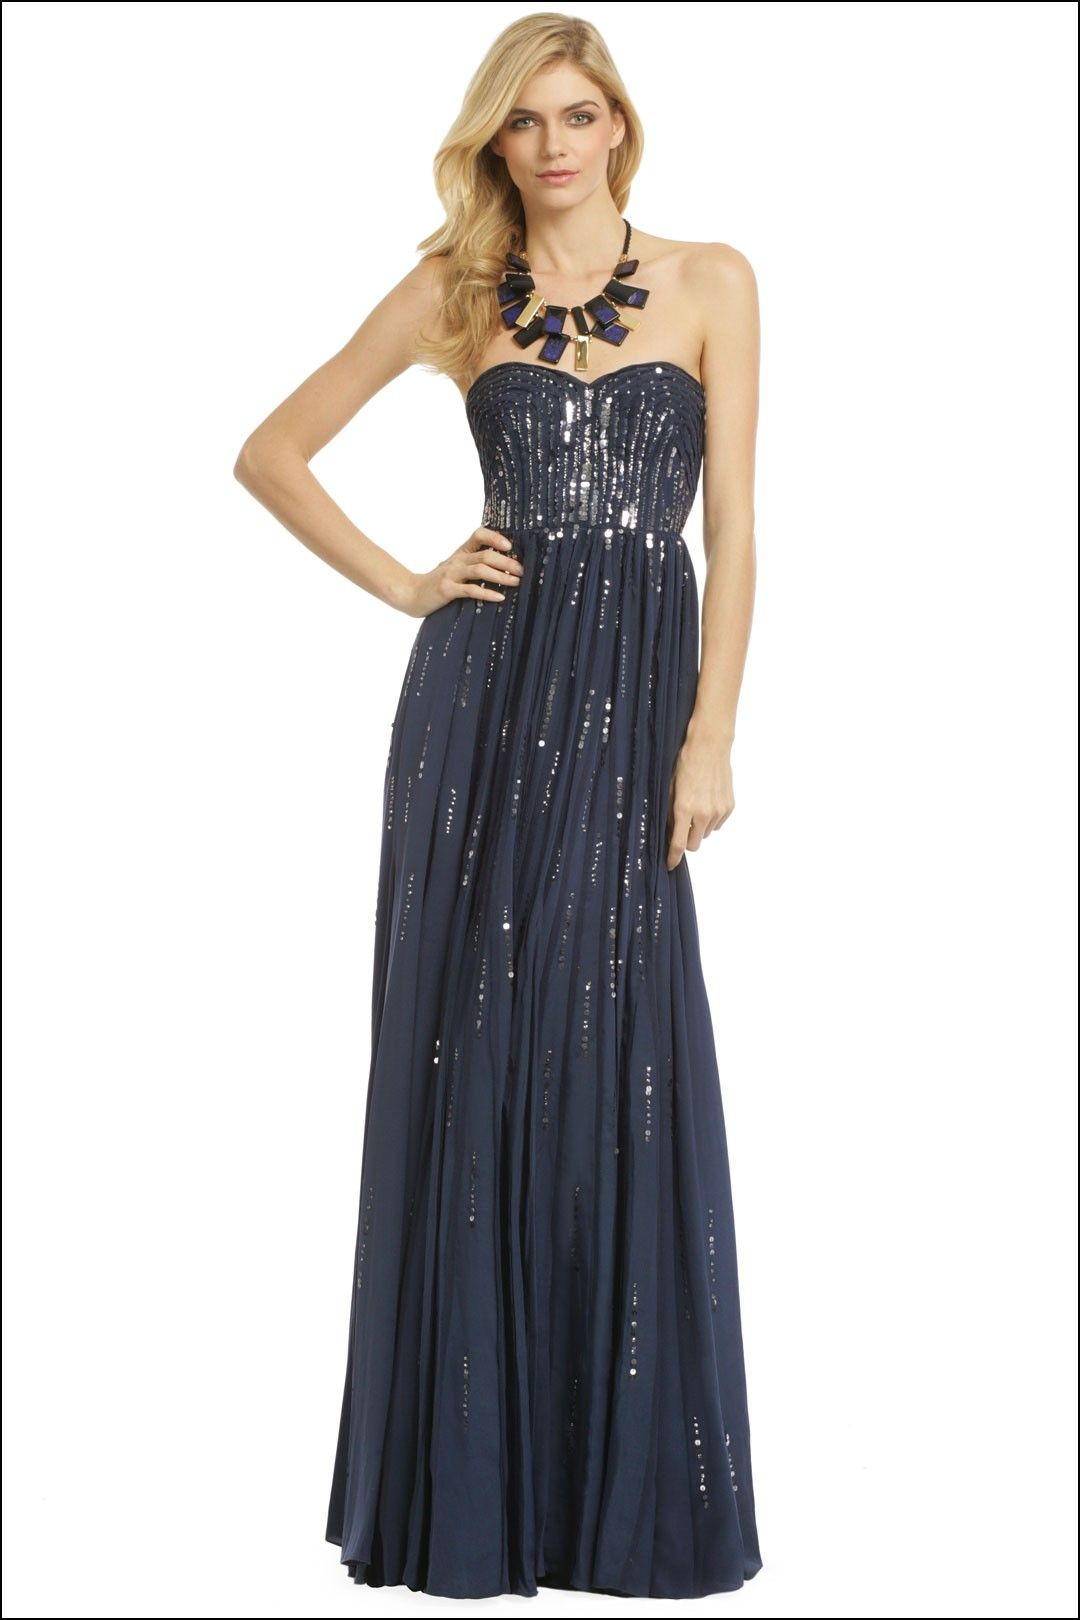 Rebecca Taylor Meteor Shower Gown | Dresses and Gowns Ideas ...